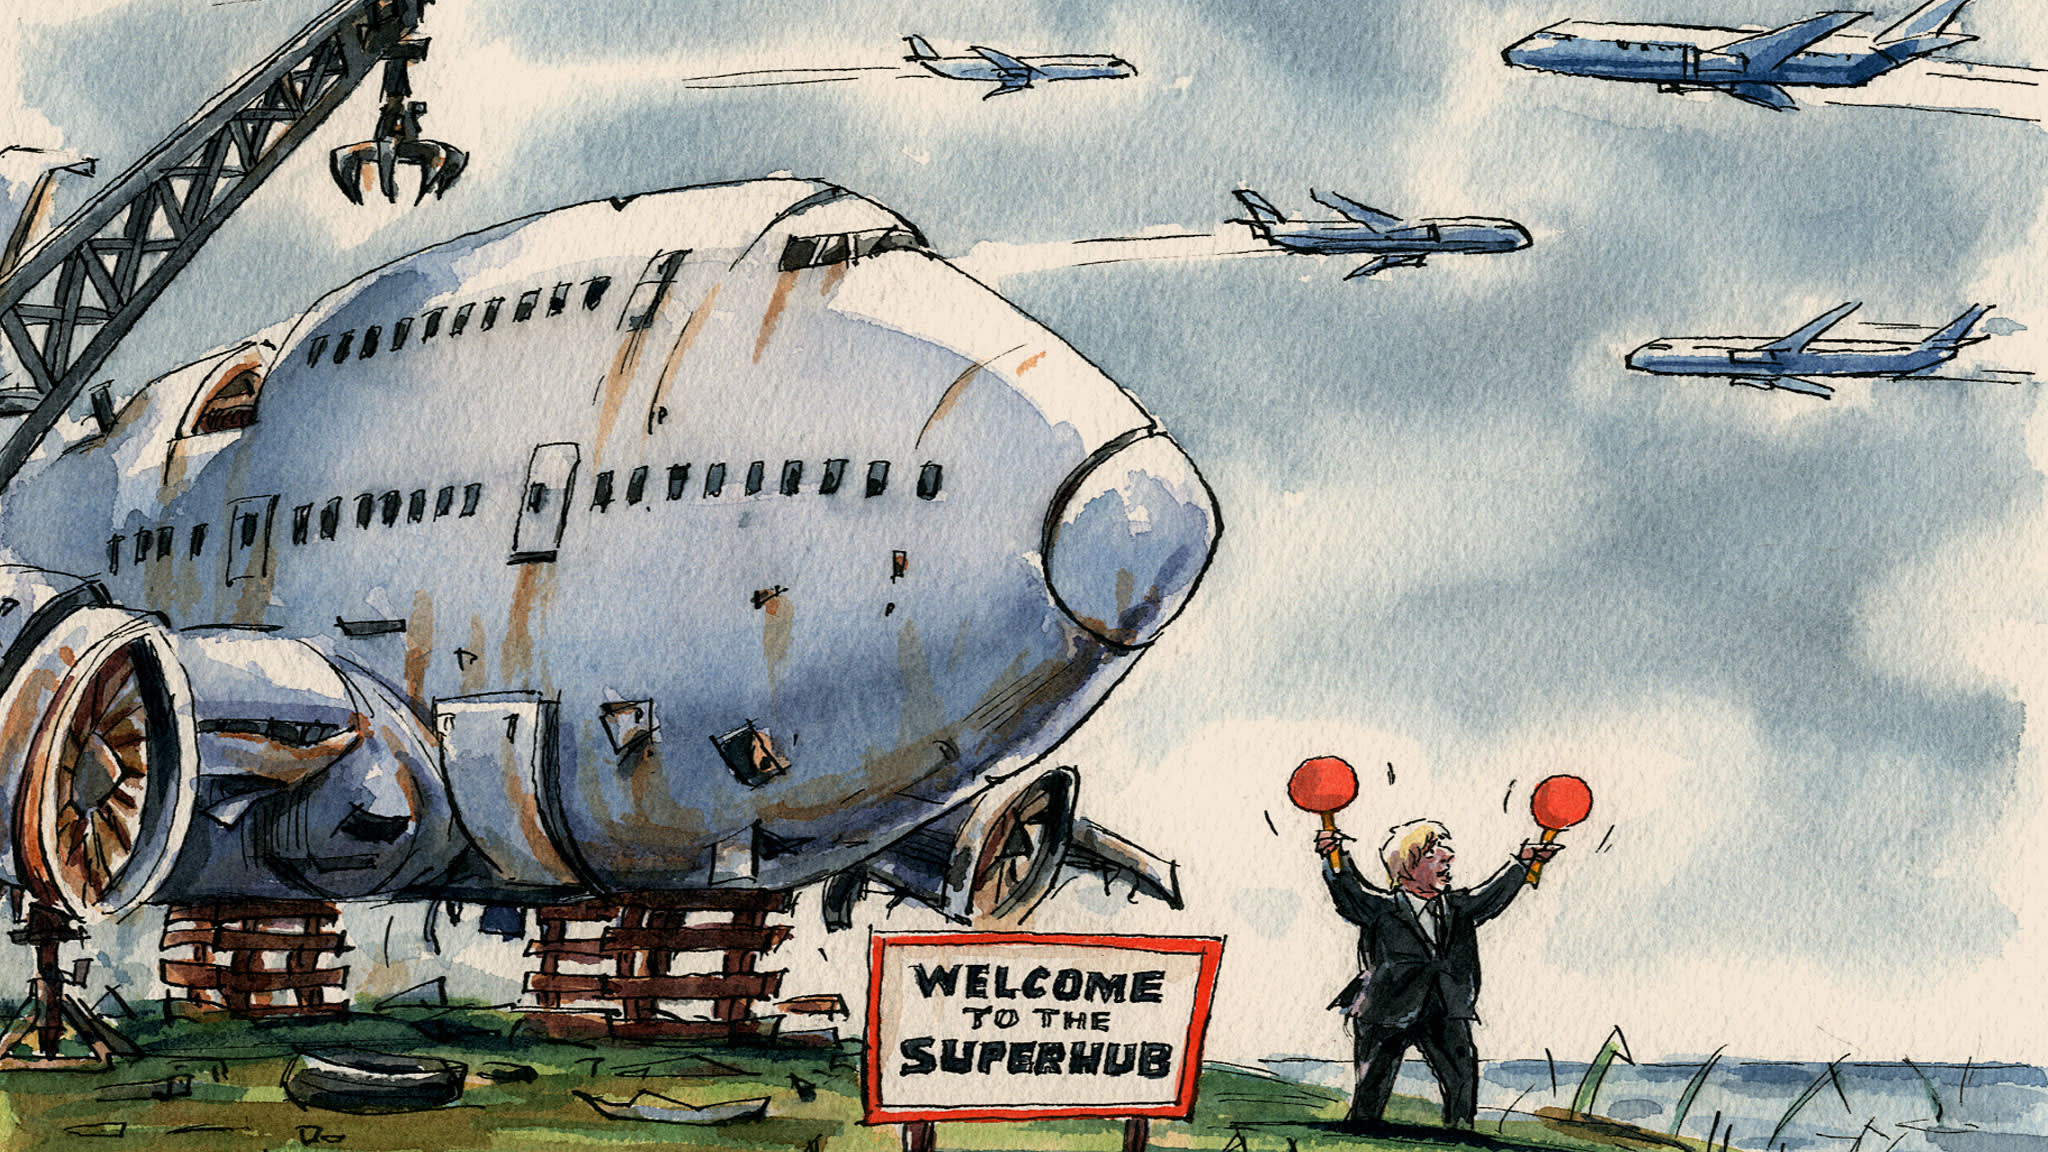 The fast-approaching end of the jumbo jet era | Financial Times